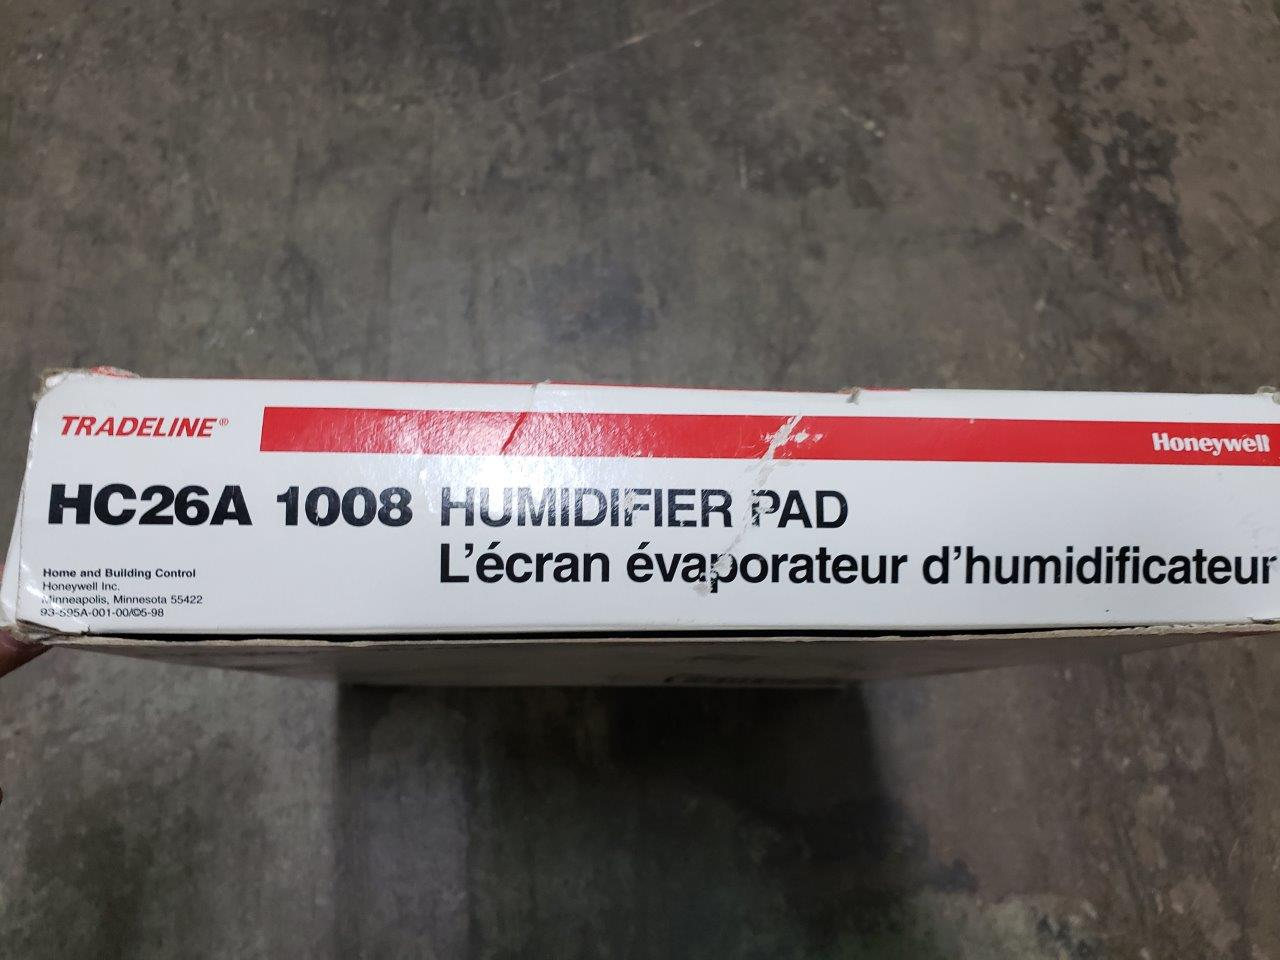 Honeywell Standard Humidifier Pad HC26A1008 for the HE260, HE265, HE360 and HE365